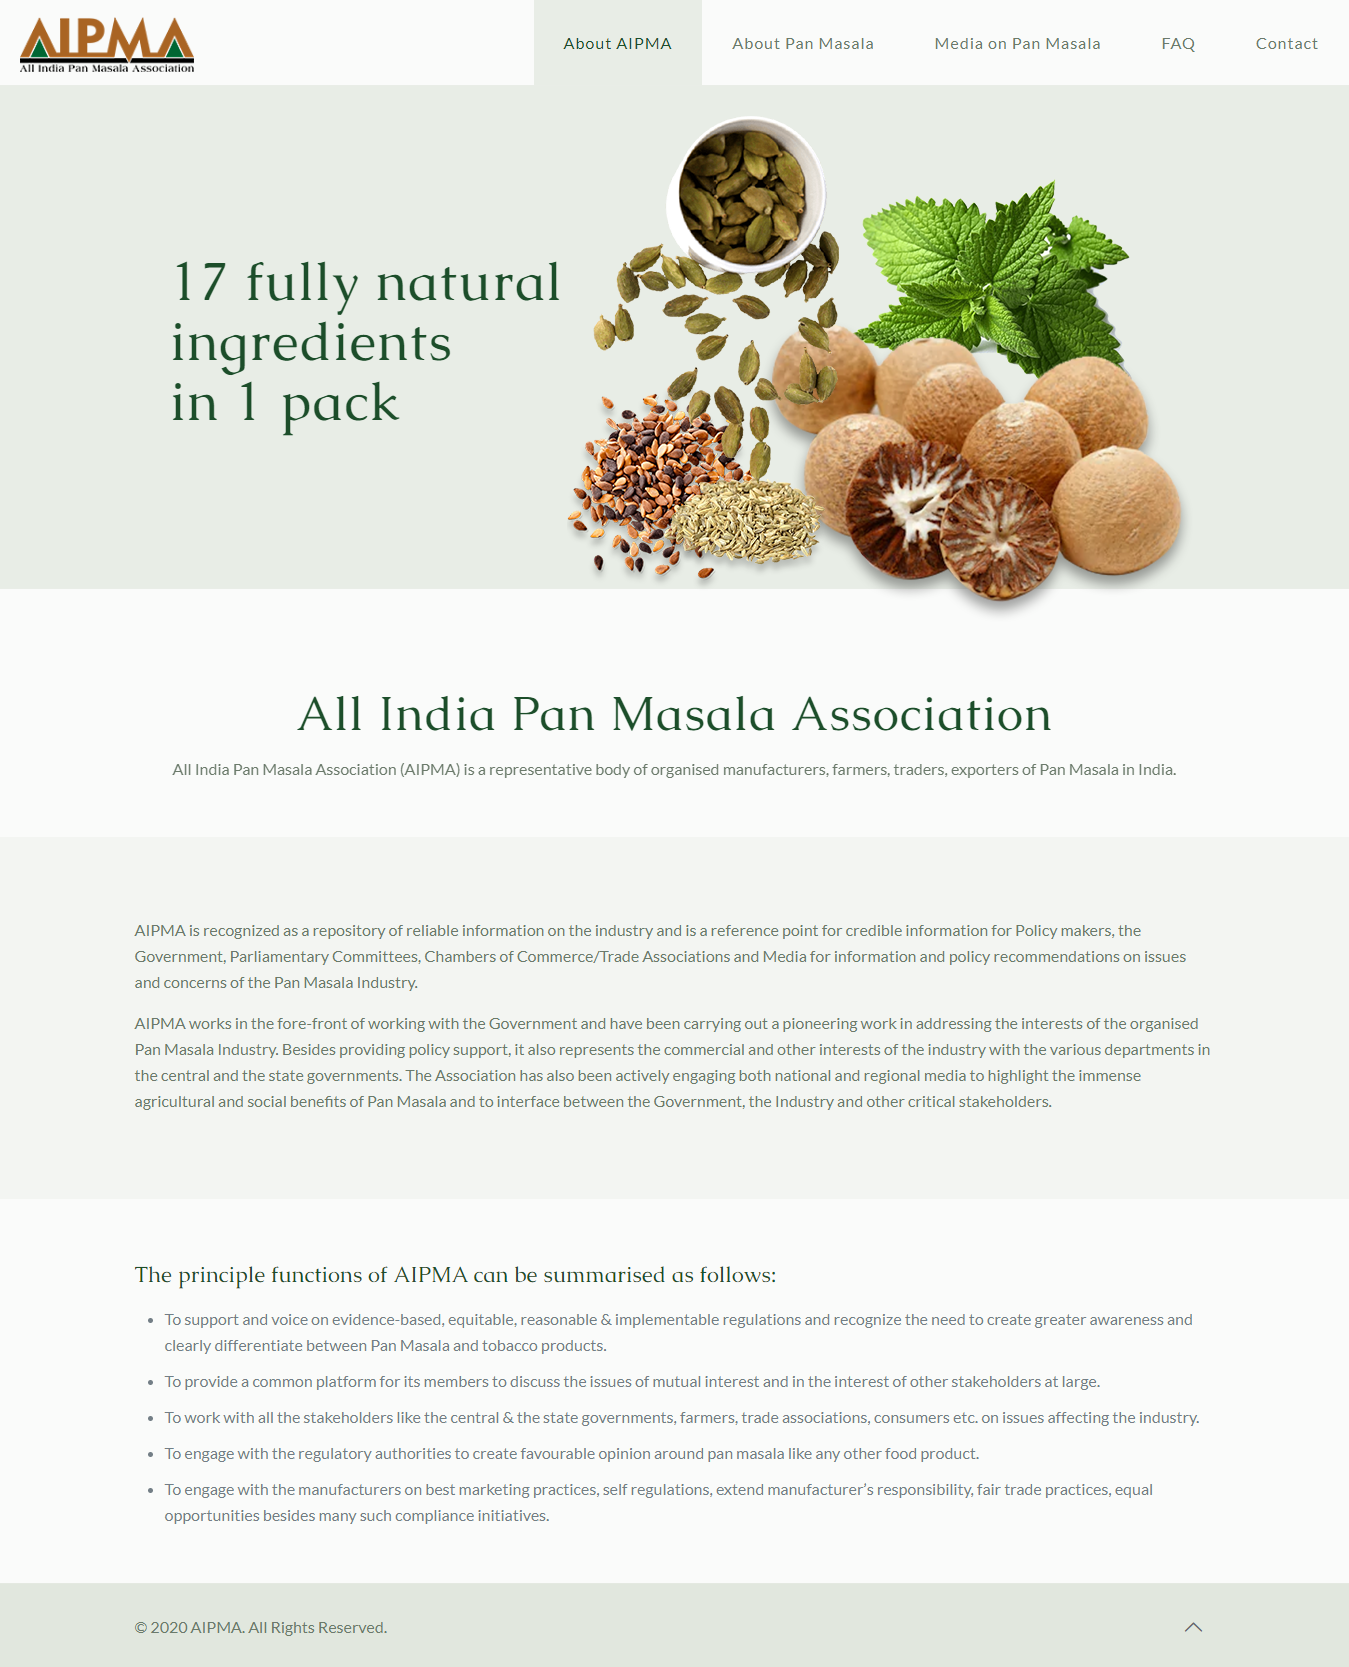 All India Pan Masala Association